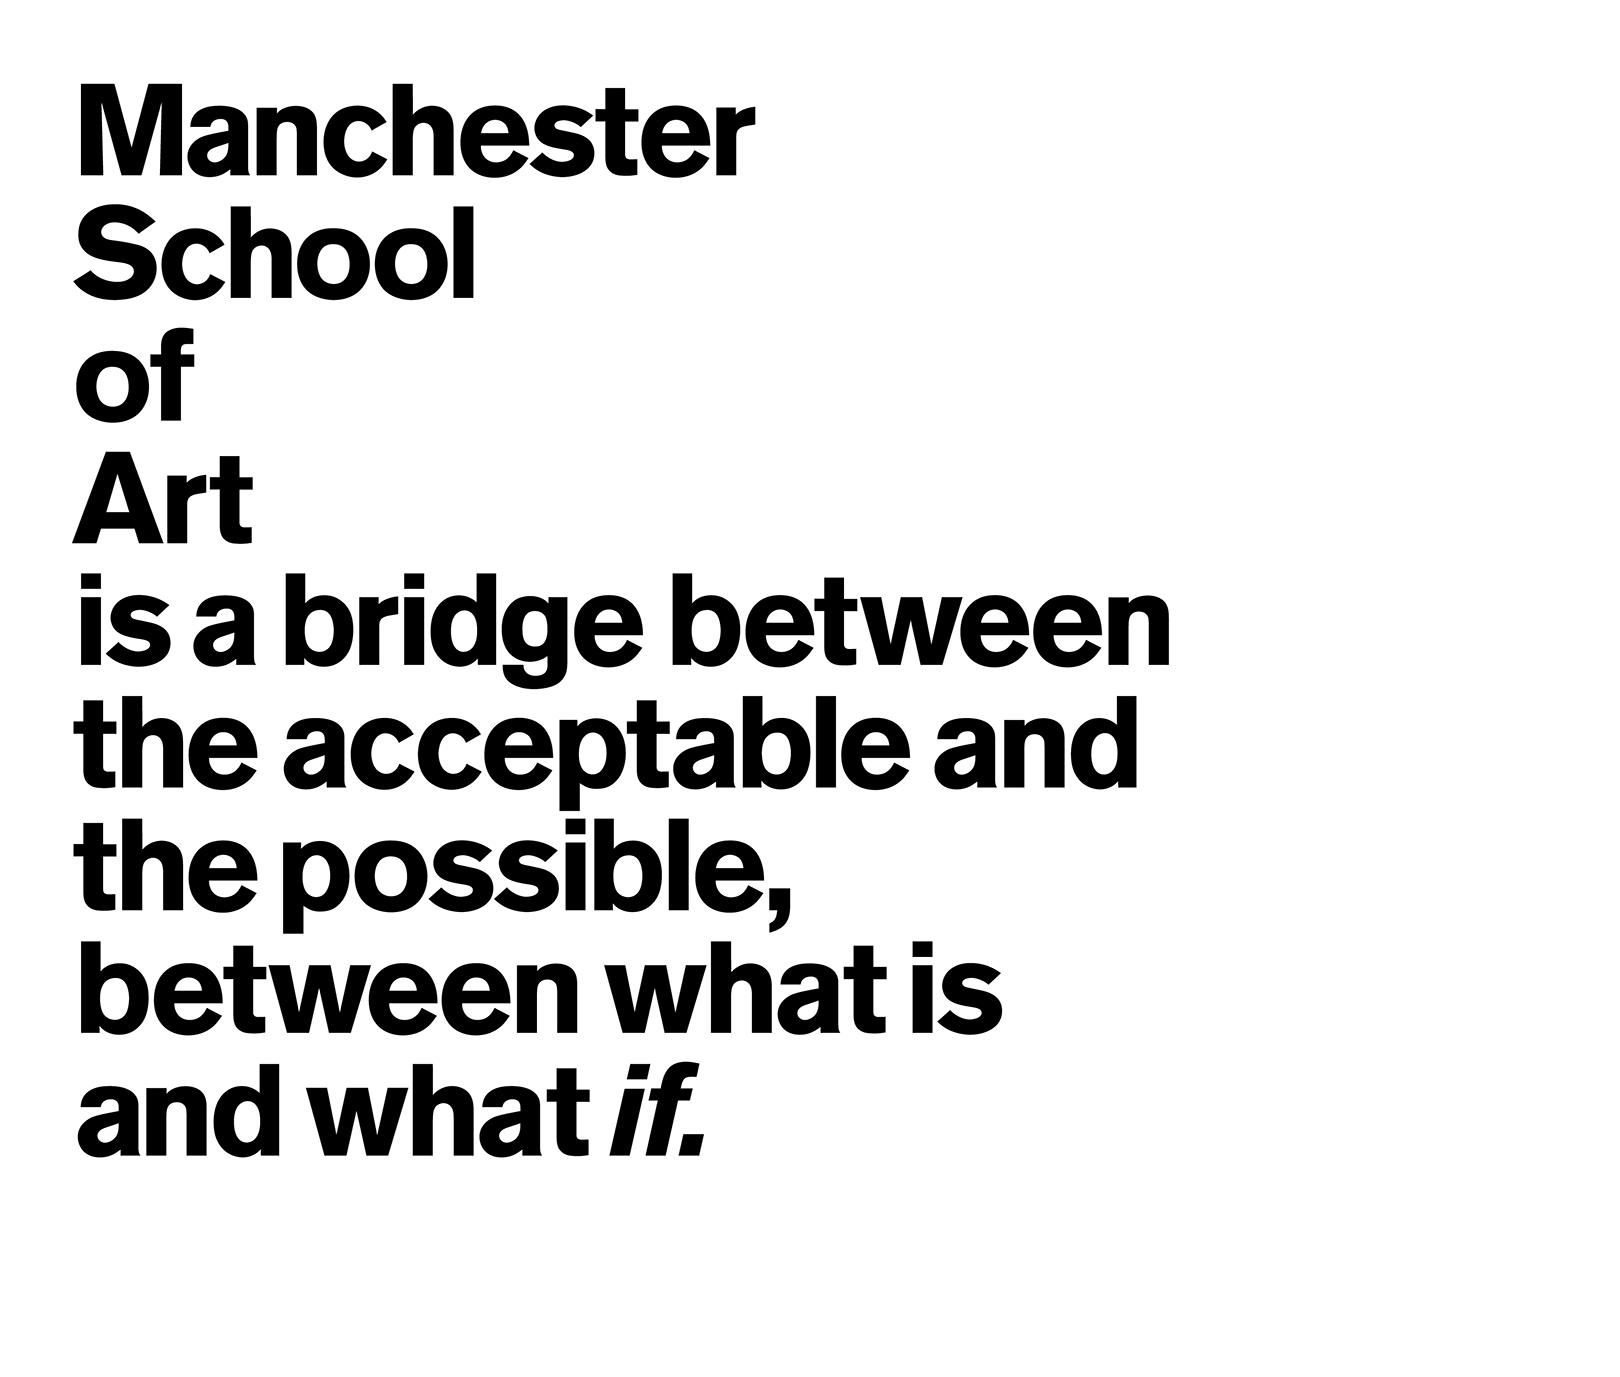 Manchester School of Art is a bridge between the acceptable and the possible, the bridge between what is and what if.